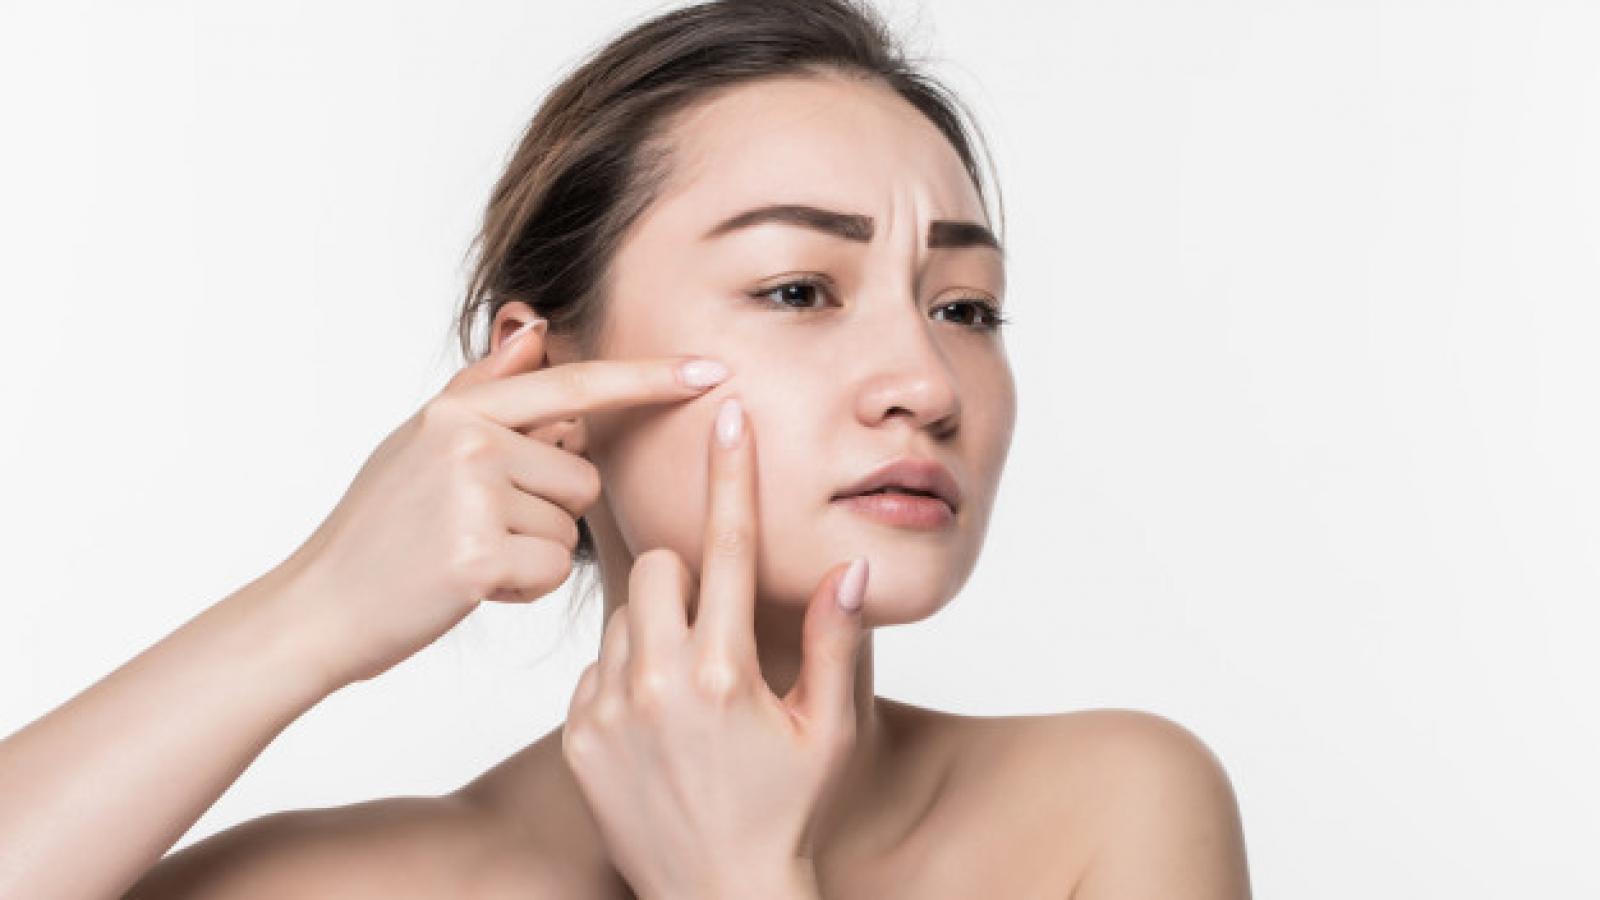 portrait-young-attractive-woman-touching-her-face-looking-acne-isolated-white-wall_231208-1025